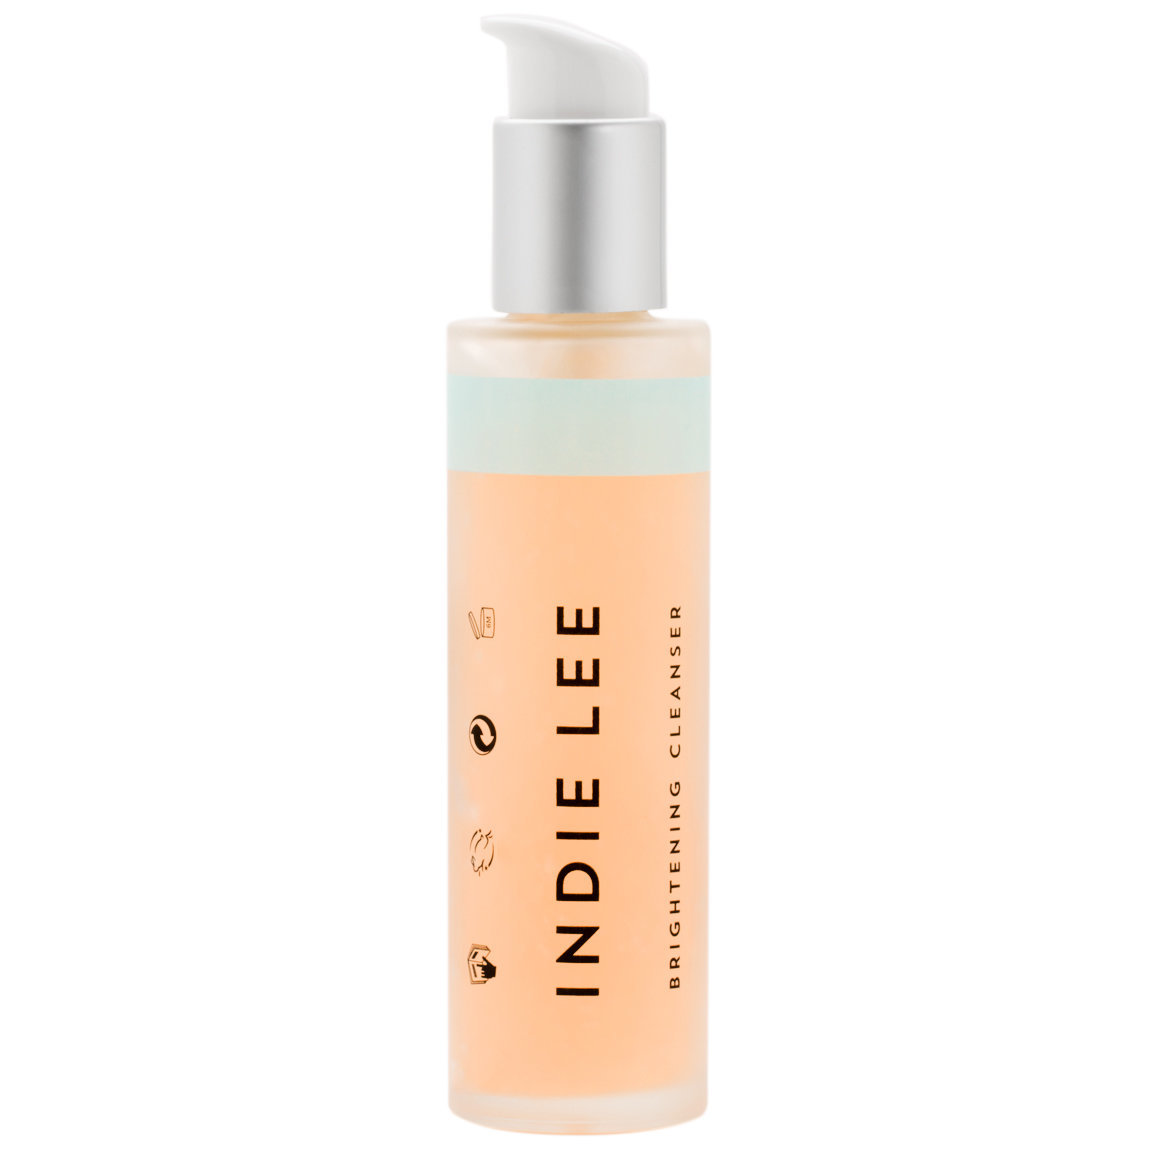 Indie Lee Brightening Cleanser 125 ml product smear.